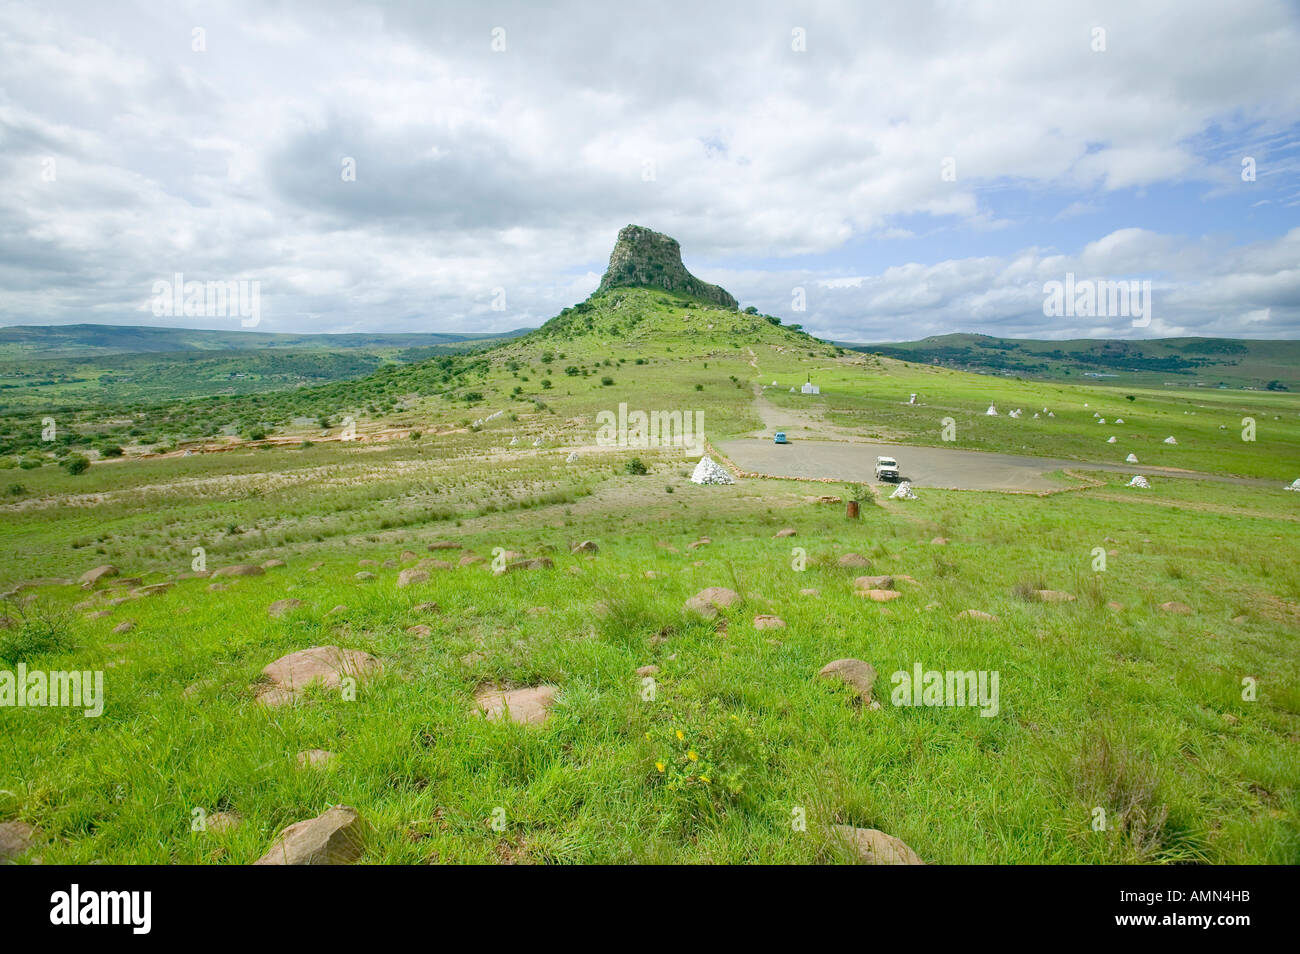 Sandlwana hill or Sphinx with soldiers graves in foreground the scene of the Anglo Zulu battle site of January 22 1879 The - Stock Image